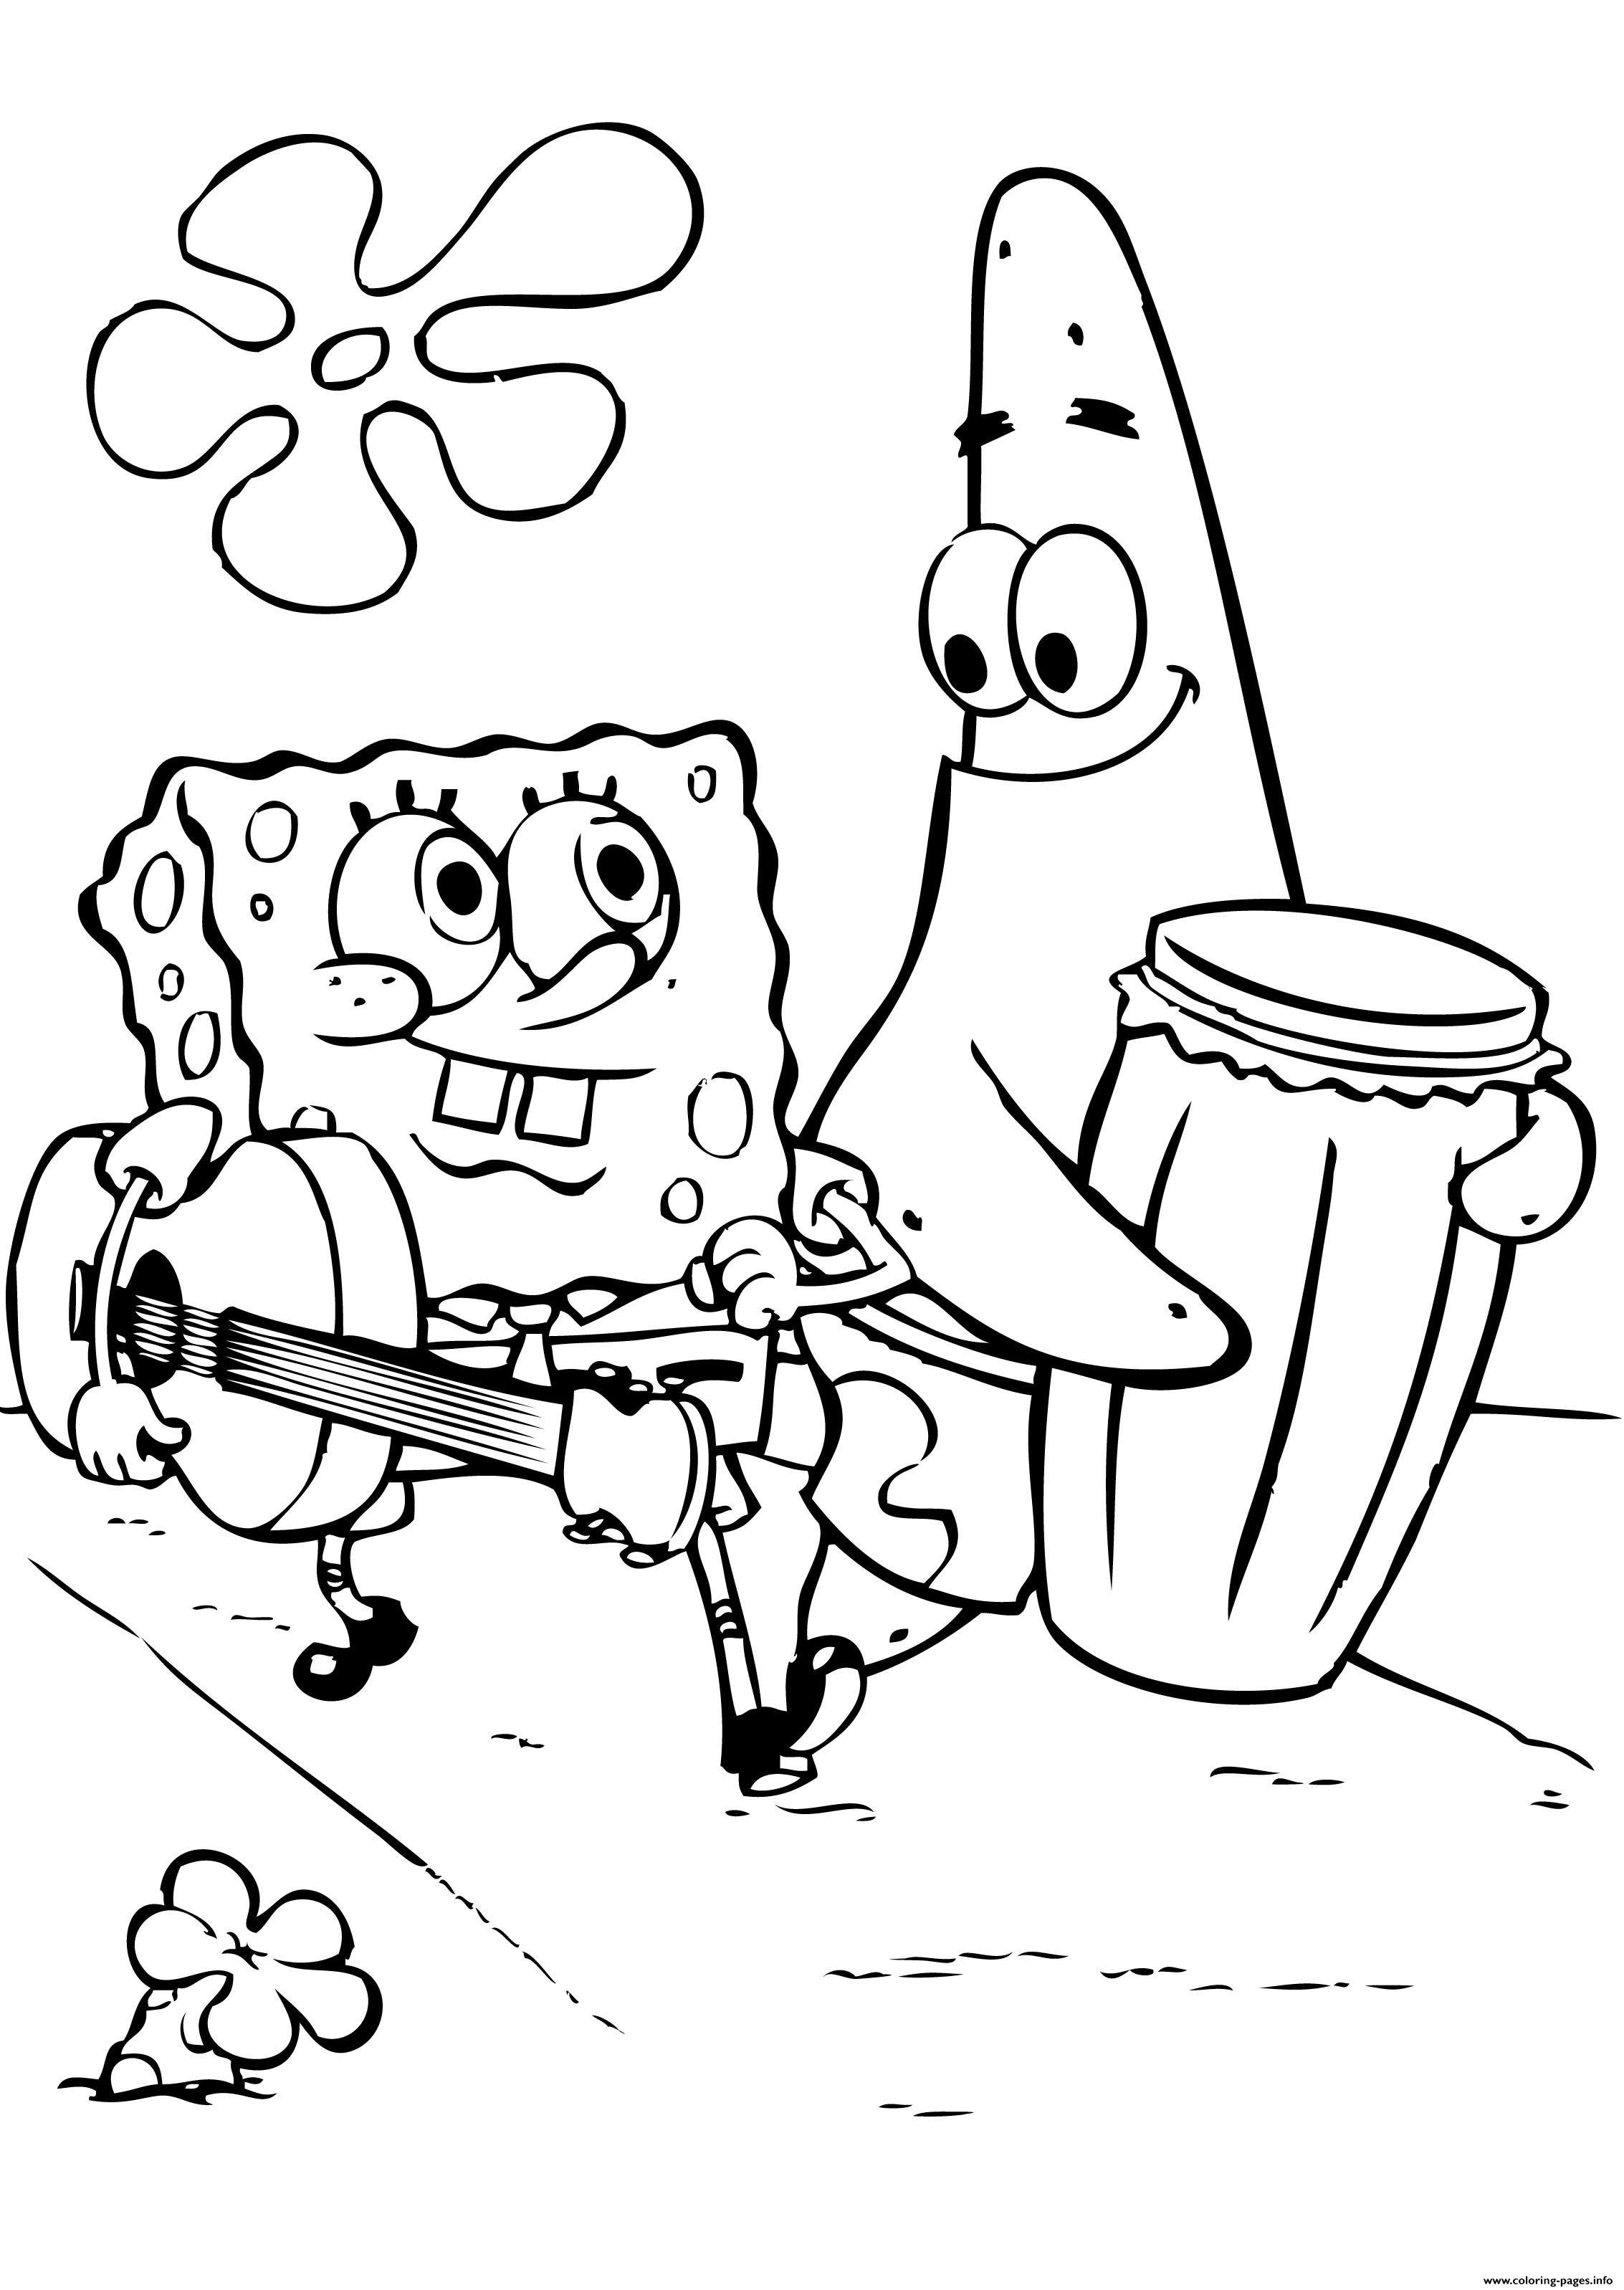 Spongebob And Patricks Play Music Coloring Pages Printable